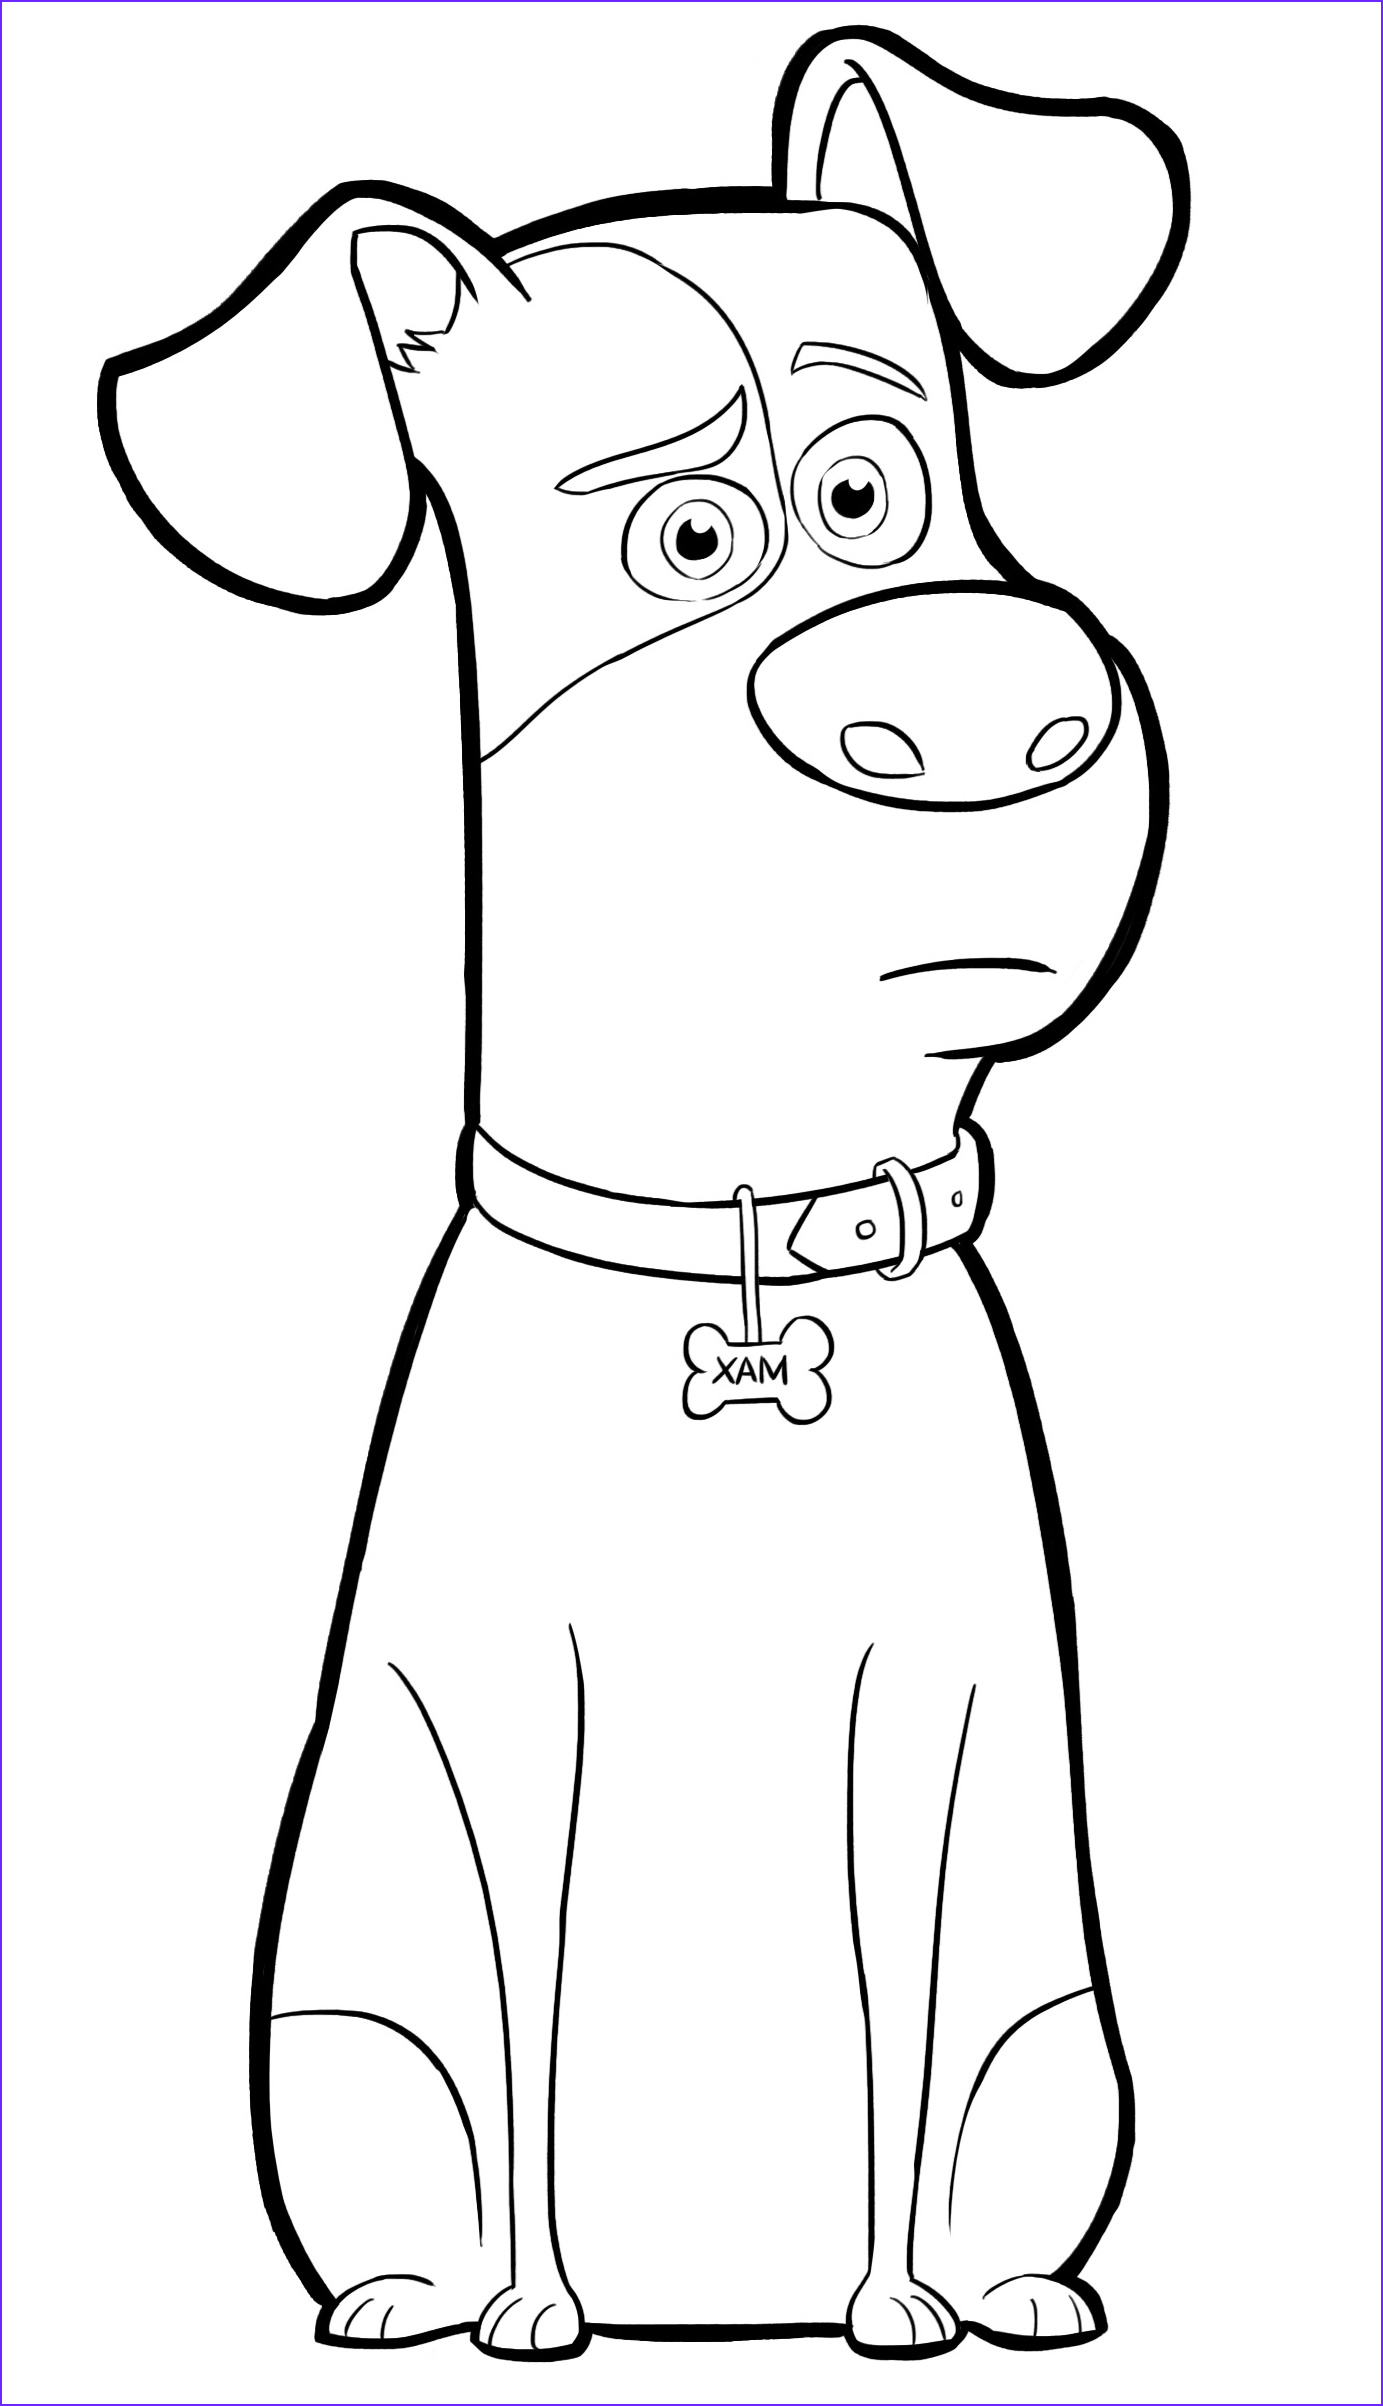 Coloring Page Children Beautiful Stock Pets Coloring Pages Best Coloring Pages for Kids